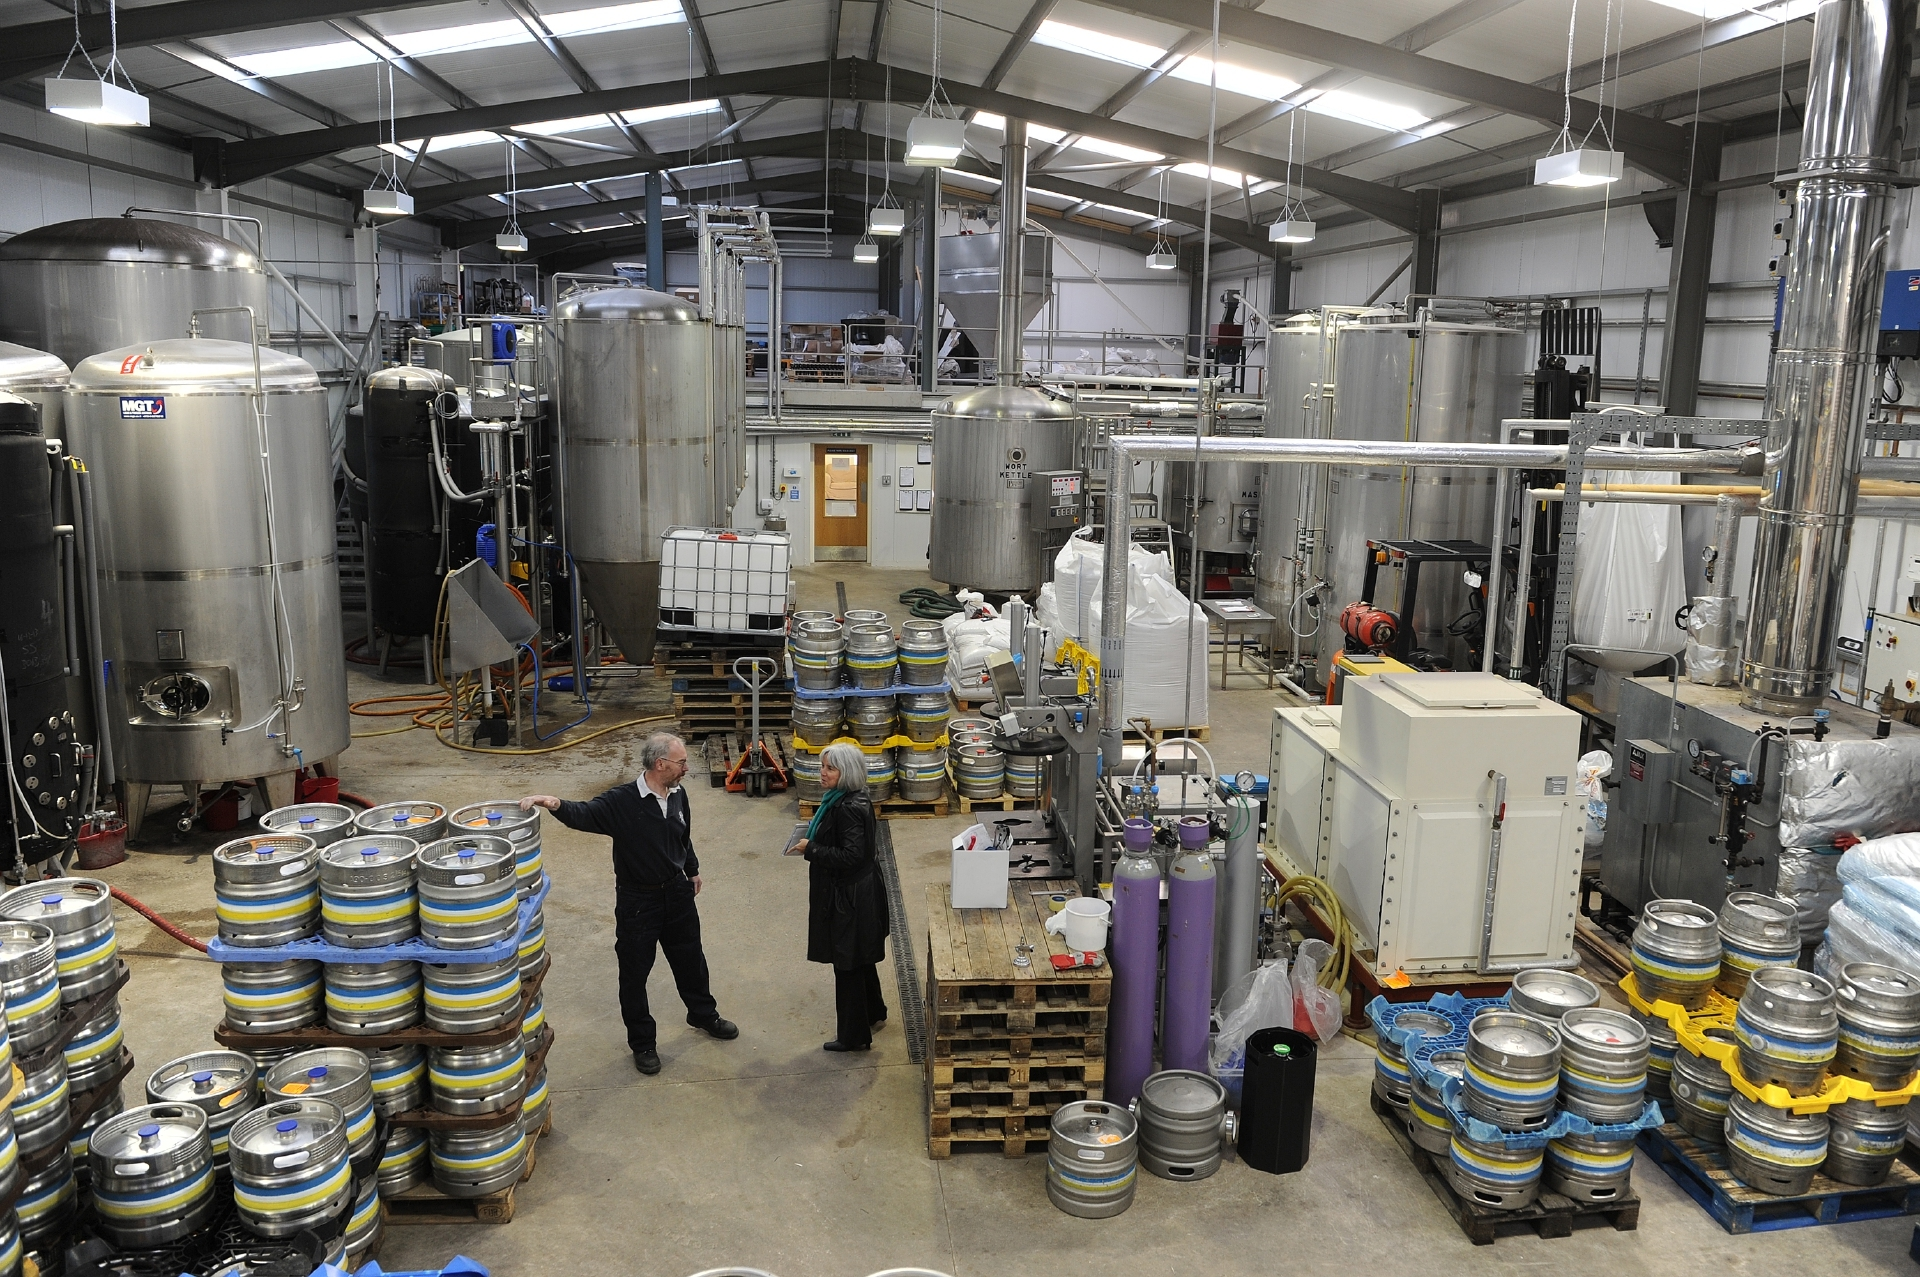 The Inveralmond Brewery is to be renamed the Innis & Gunn Brewery under the investment plan.